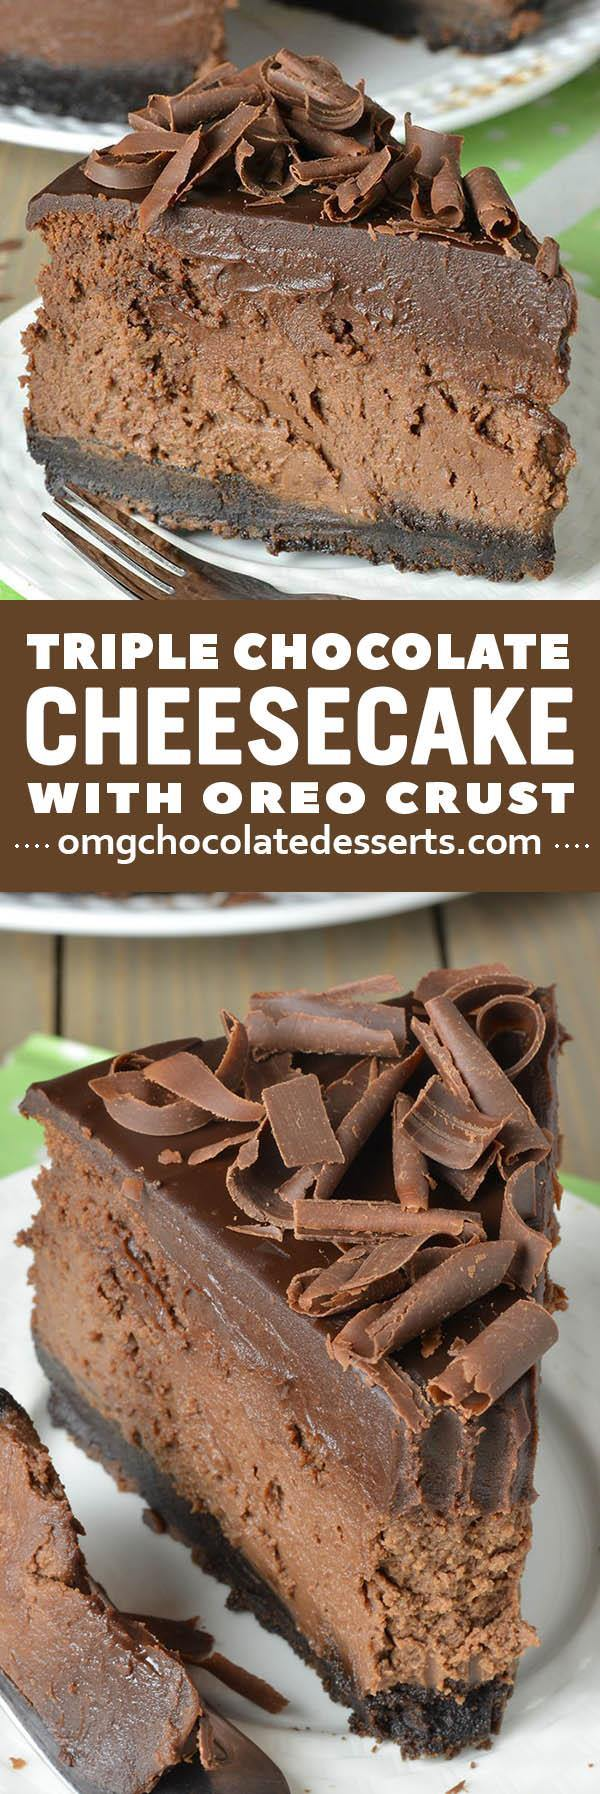 Triple Chocolate Cheesecake with Oreo Crust is reach and decadent, triple chocolate treat. It's chocolate loves dream: chocolate cookie crust, smooth and creamy chocolate cheesecake filling, silky chocolate ganache topping, plus extra chocolate curls on top!!!